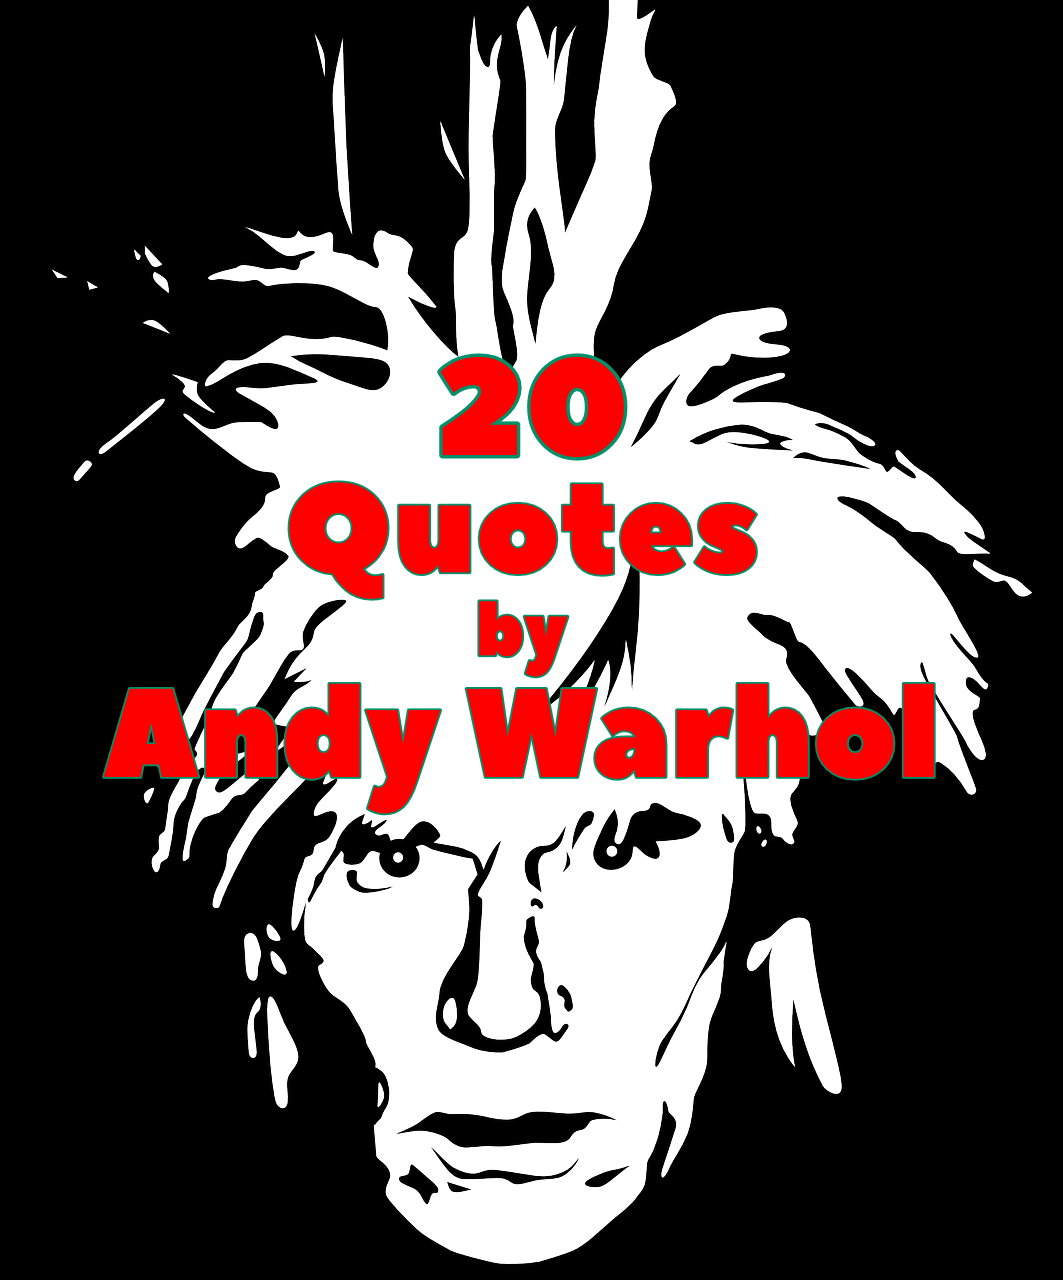 20 Andy Warhol Quotes be kitschig blog